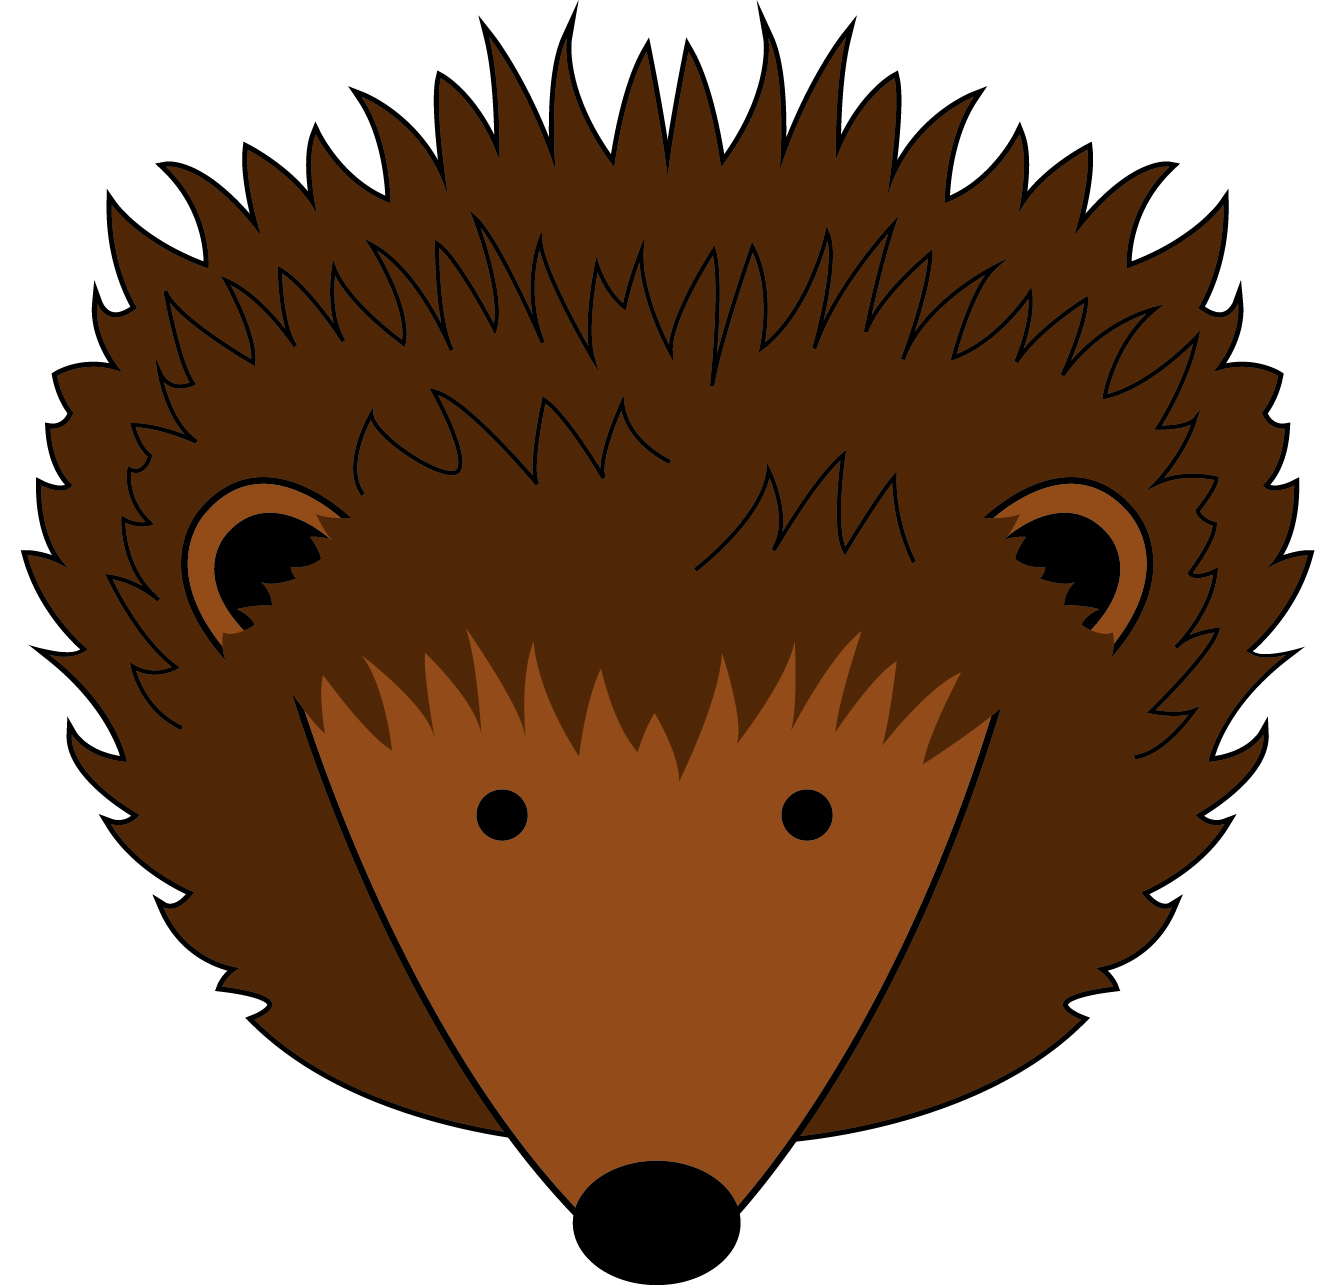 British Hedgehog Design